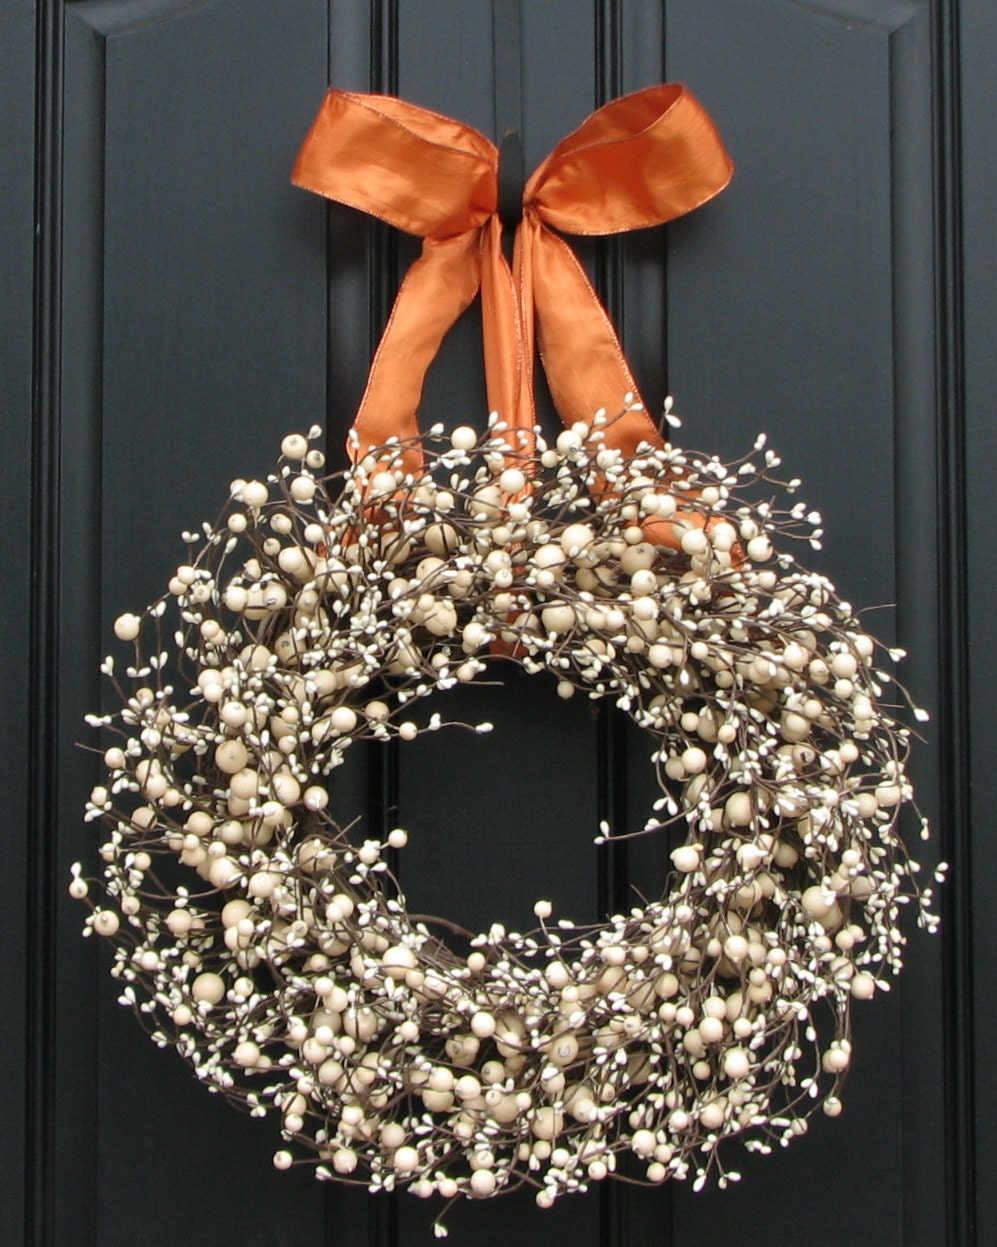 Fall Wreath for Front Door Decor - Orange and Cream Berry Wreath for Fall